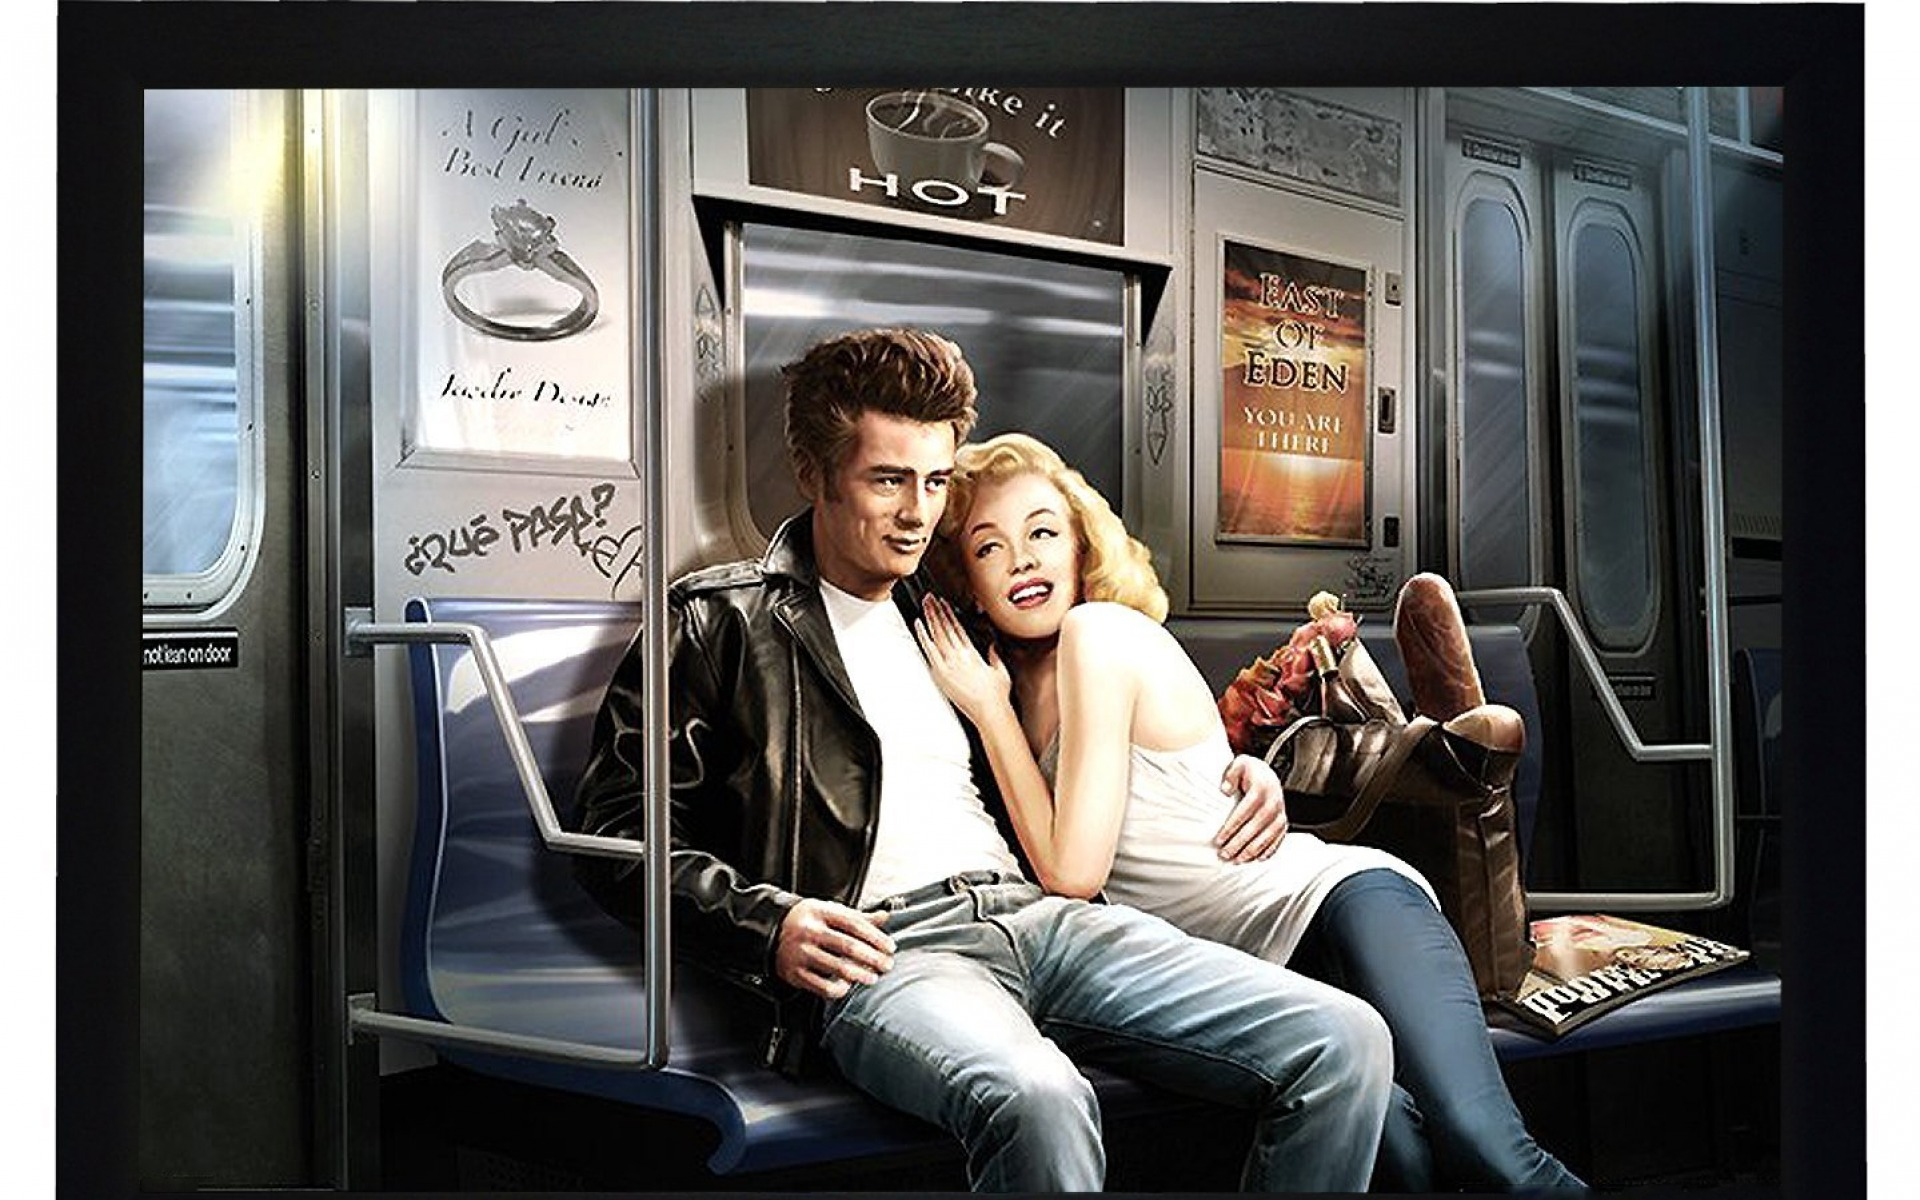 marilyn monroe und james dean hintergrundbilder marilyn monroe und james dean frei fotos. Black Bedroom Furniture Sets. Home Design Ideas